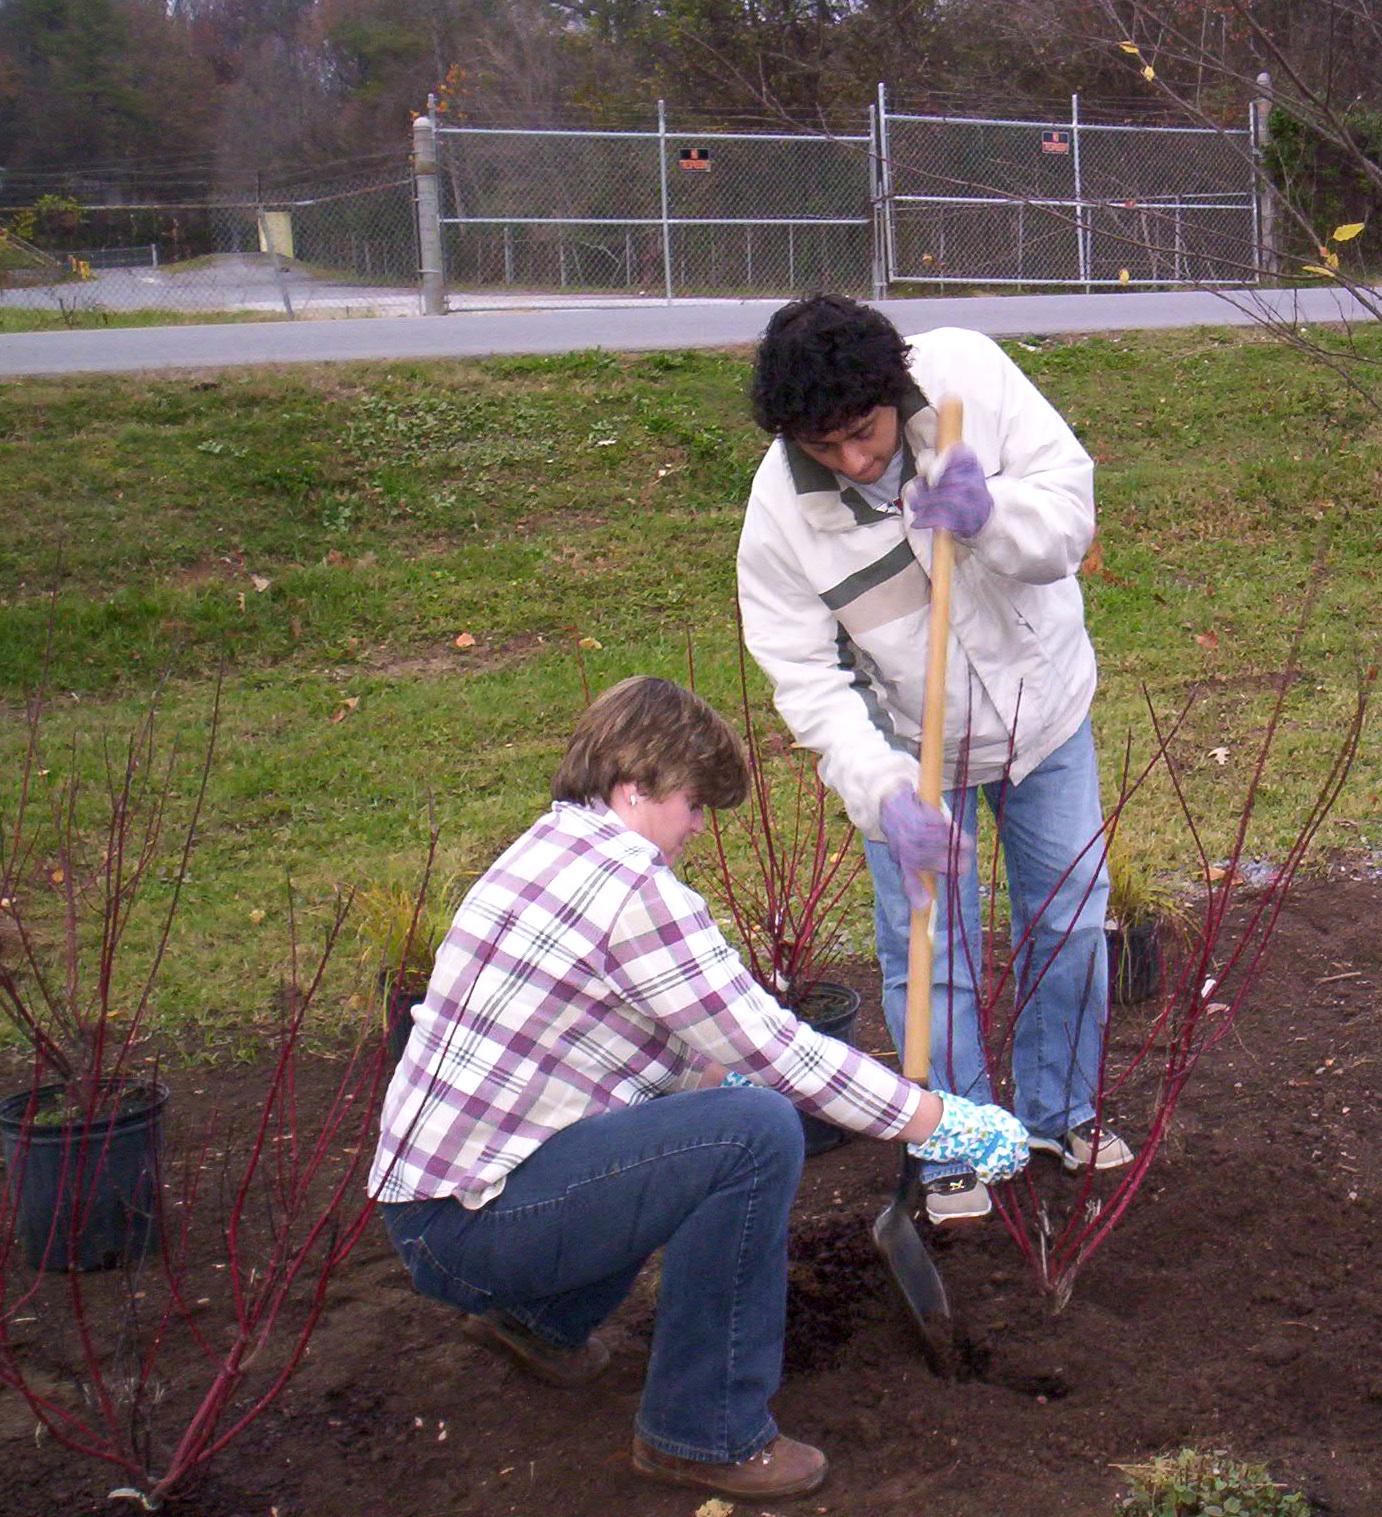 Eager home gardeners may have ordered bare root plants but just don't want to take the time right now to pick a spot and dig holes. UGA Extension experts say you can protect bare root plants by cold storing or temporarily planting them.